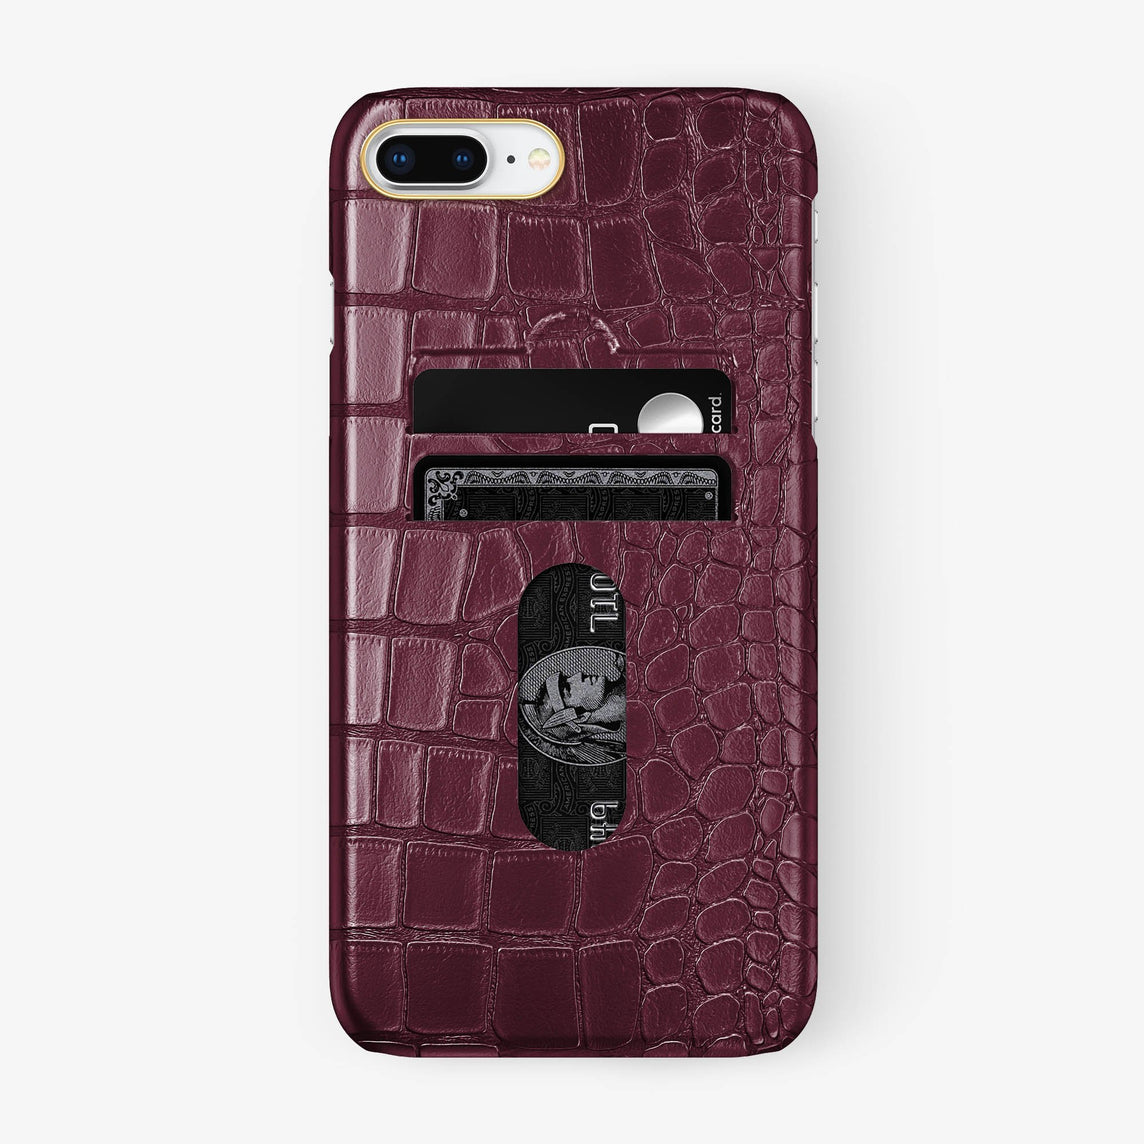 Alligator Card Holder Case iPhone 7/8 Plus | Burgundy - Yellow Gold